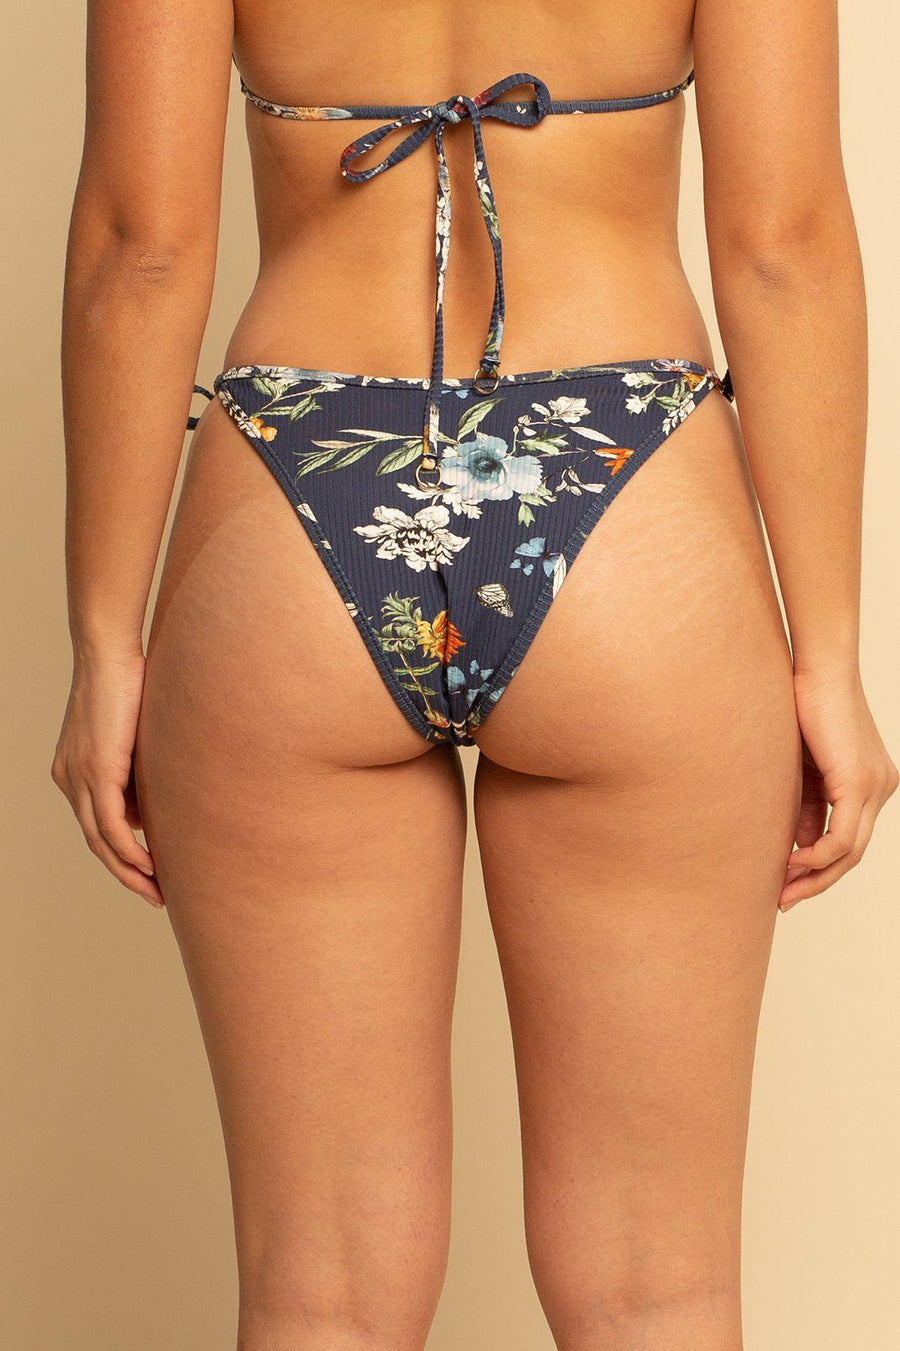 Bahamas High Hip Ring Bottom - Mystical Floral - Shore